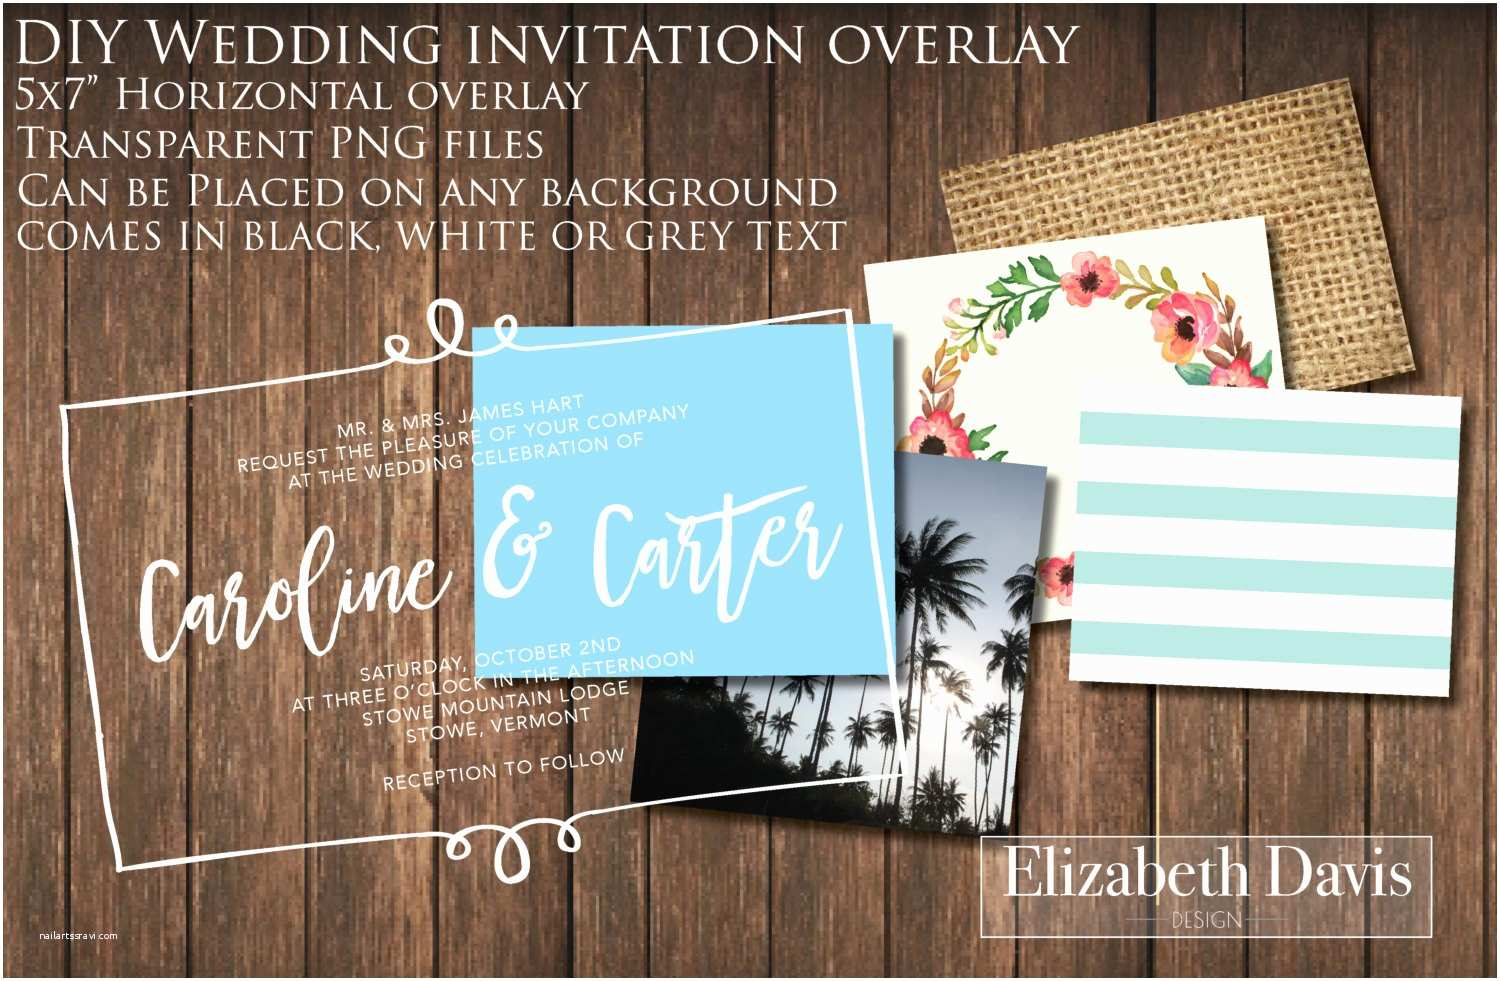 Wedding Invitations with Clear Overlay Printable Diy 5x7 Horizontal Wedding Invitation Overlay